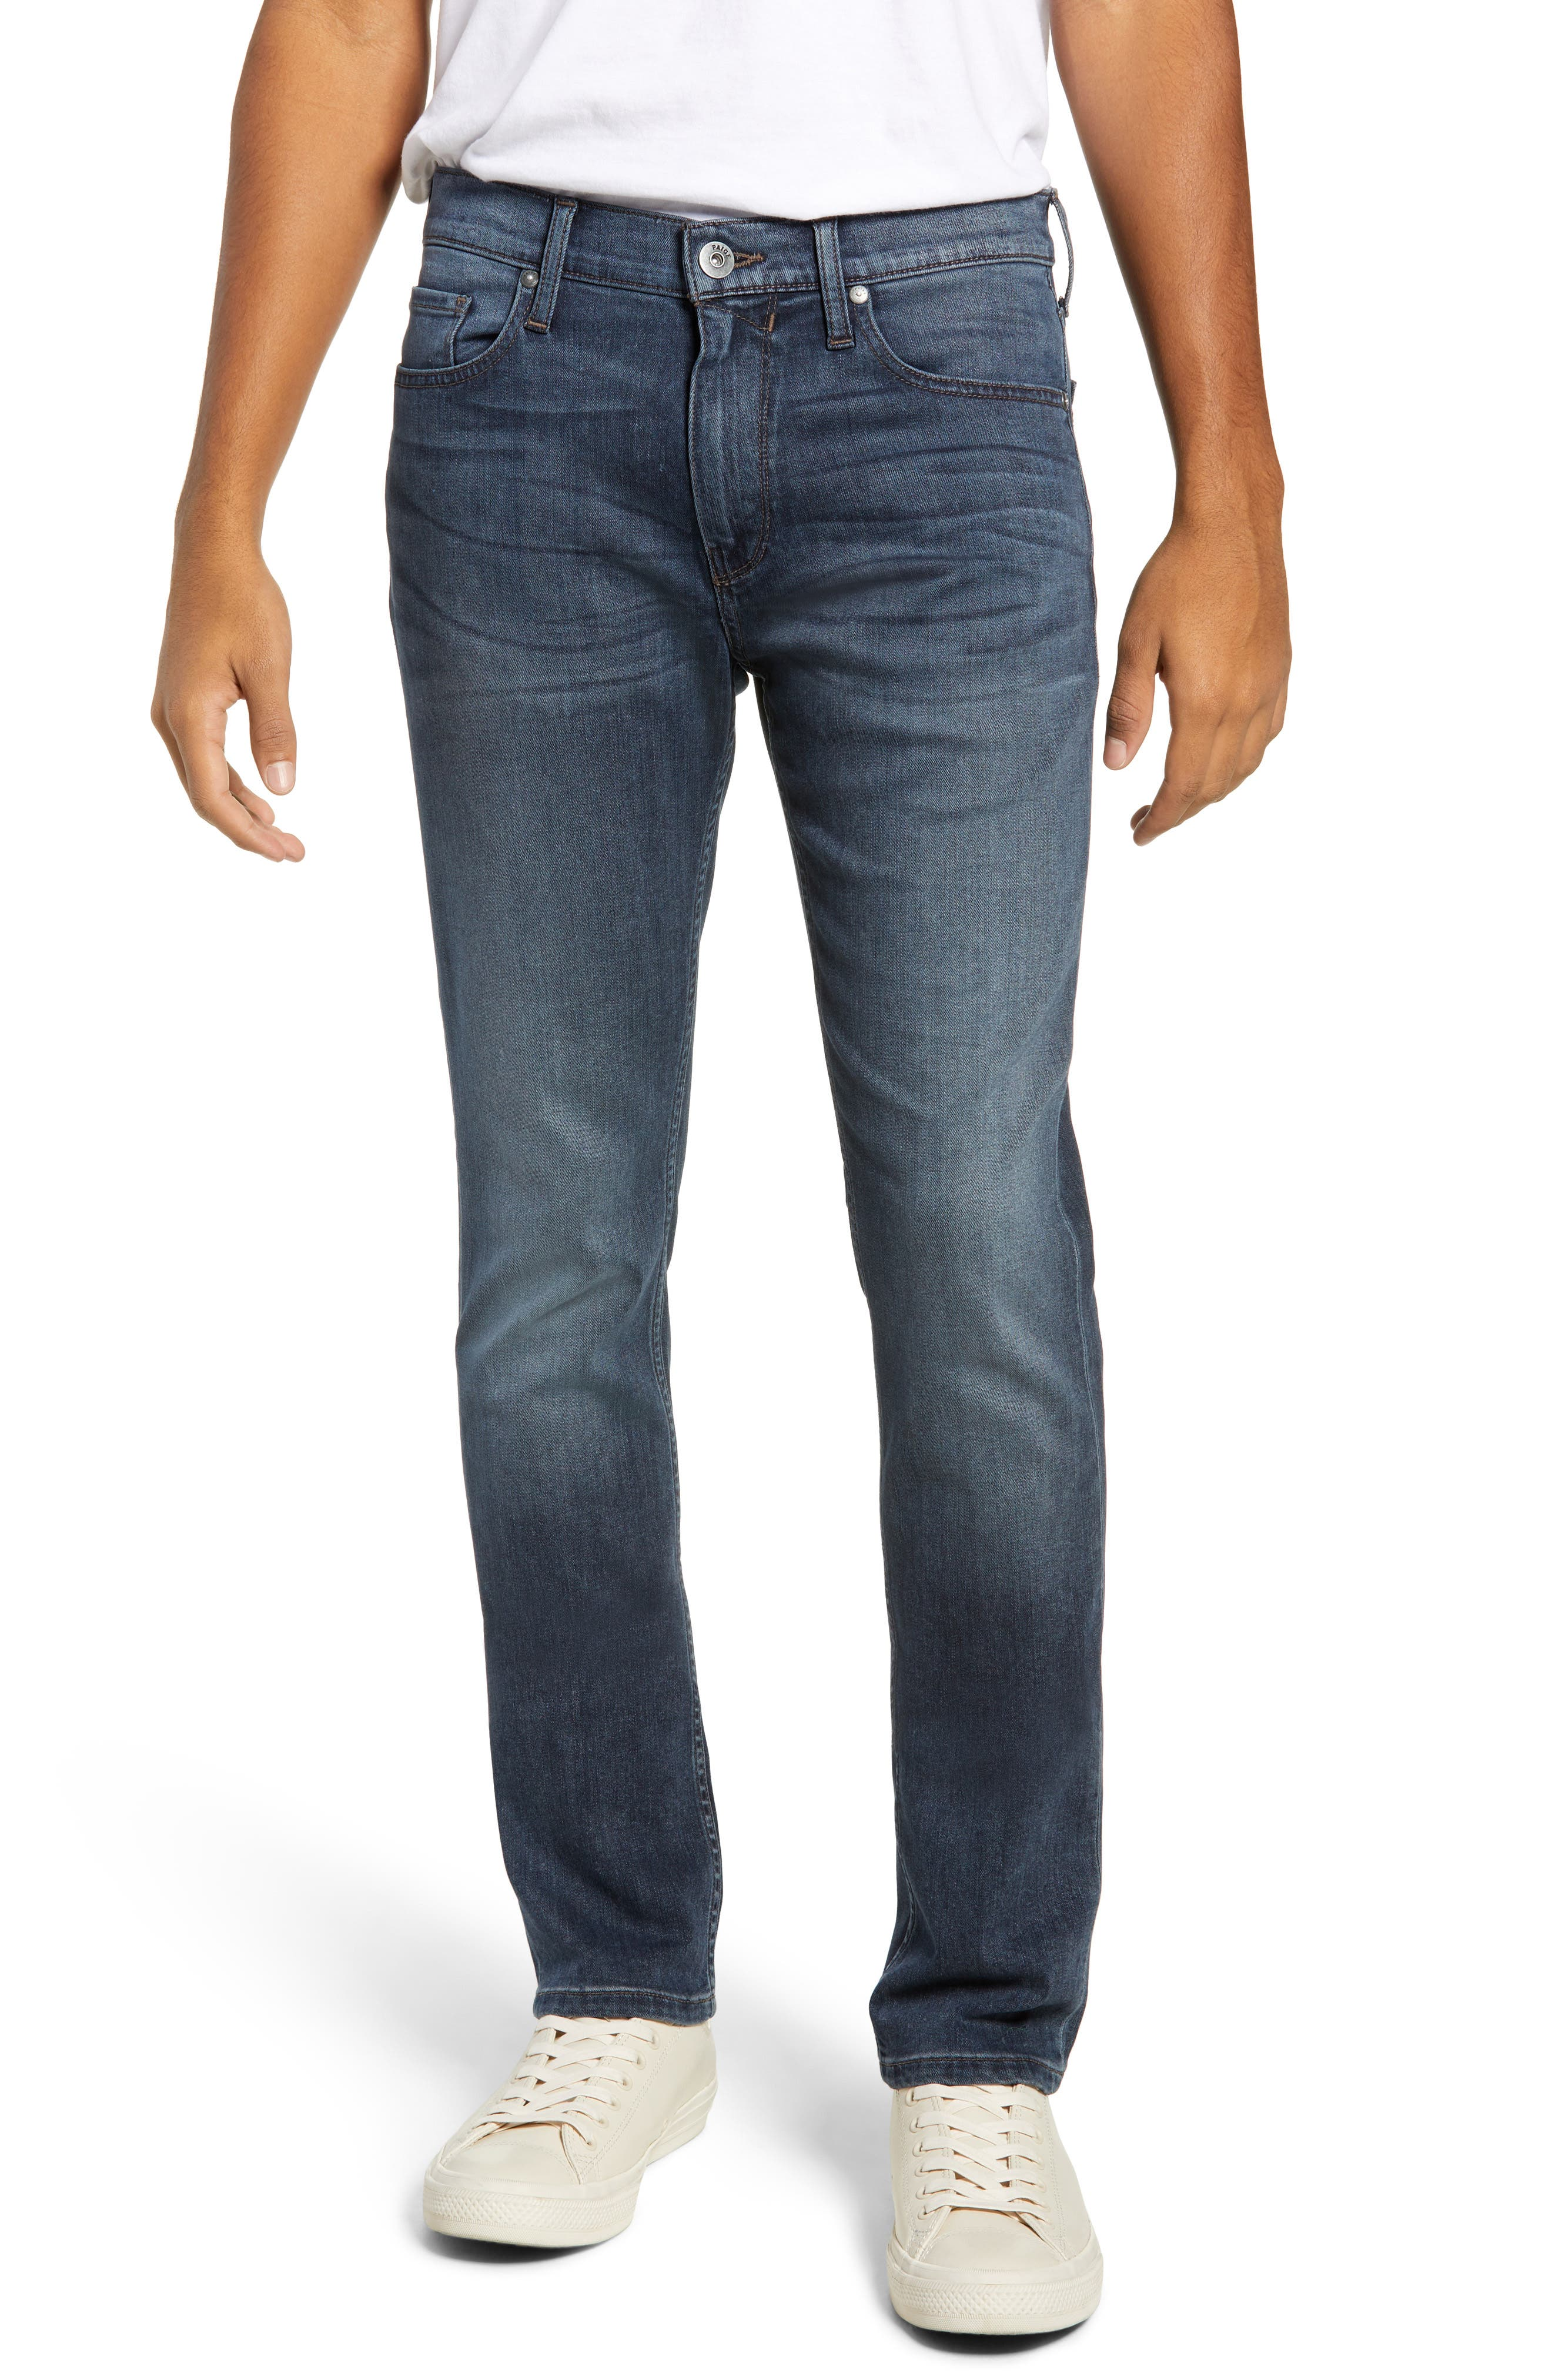 PAIGE Transcend - Federal Slim Straight Leg Jeans, Main, color, GARNER